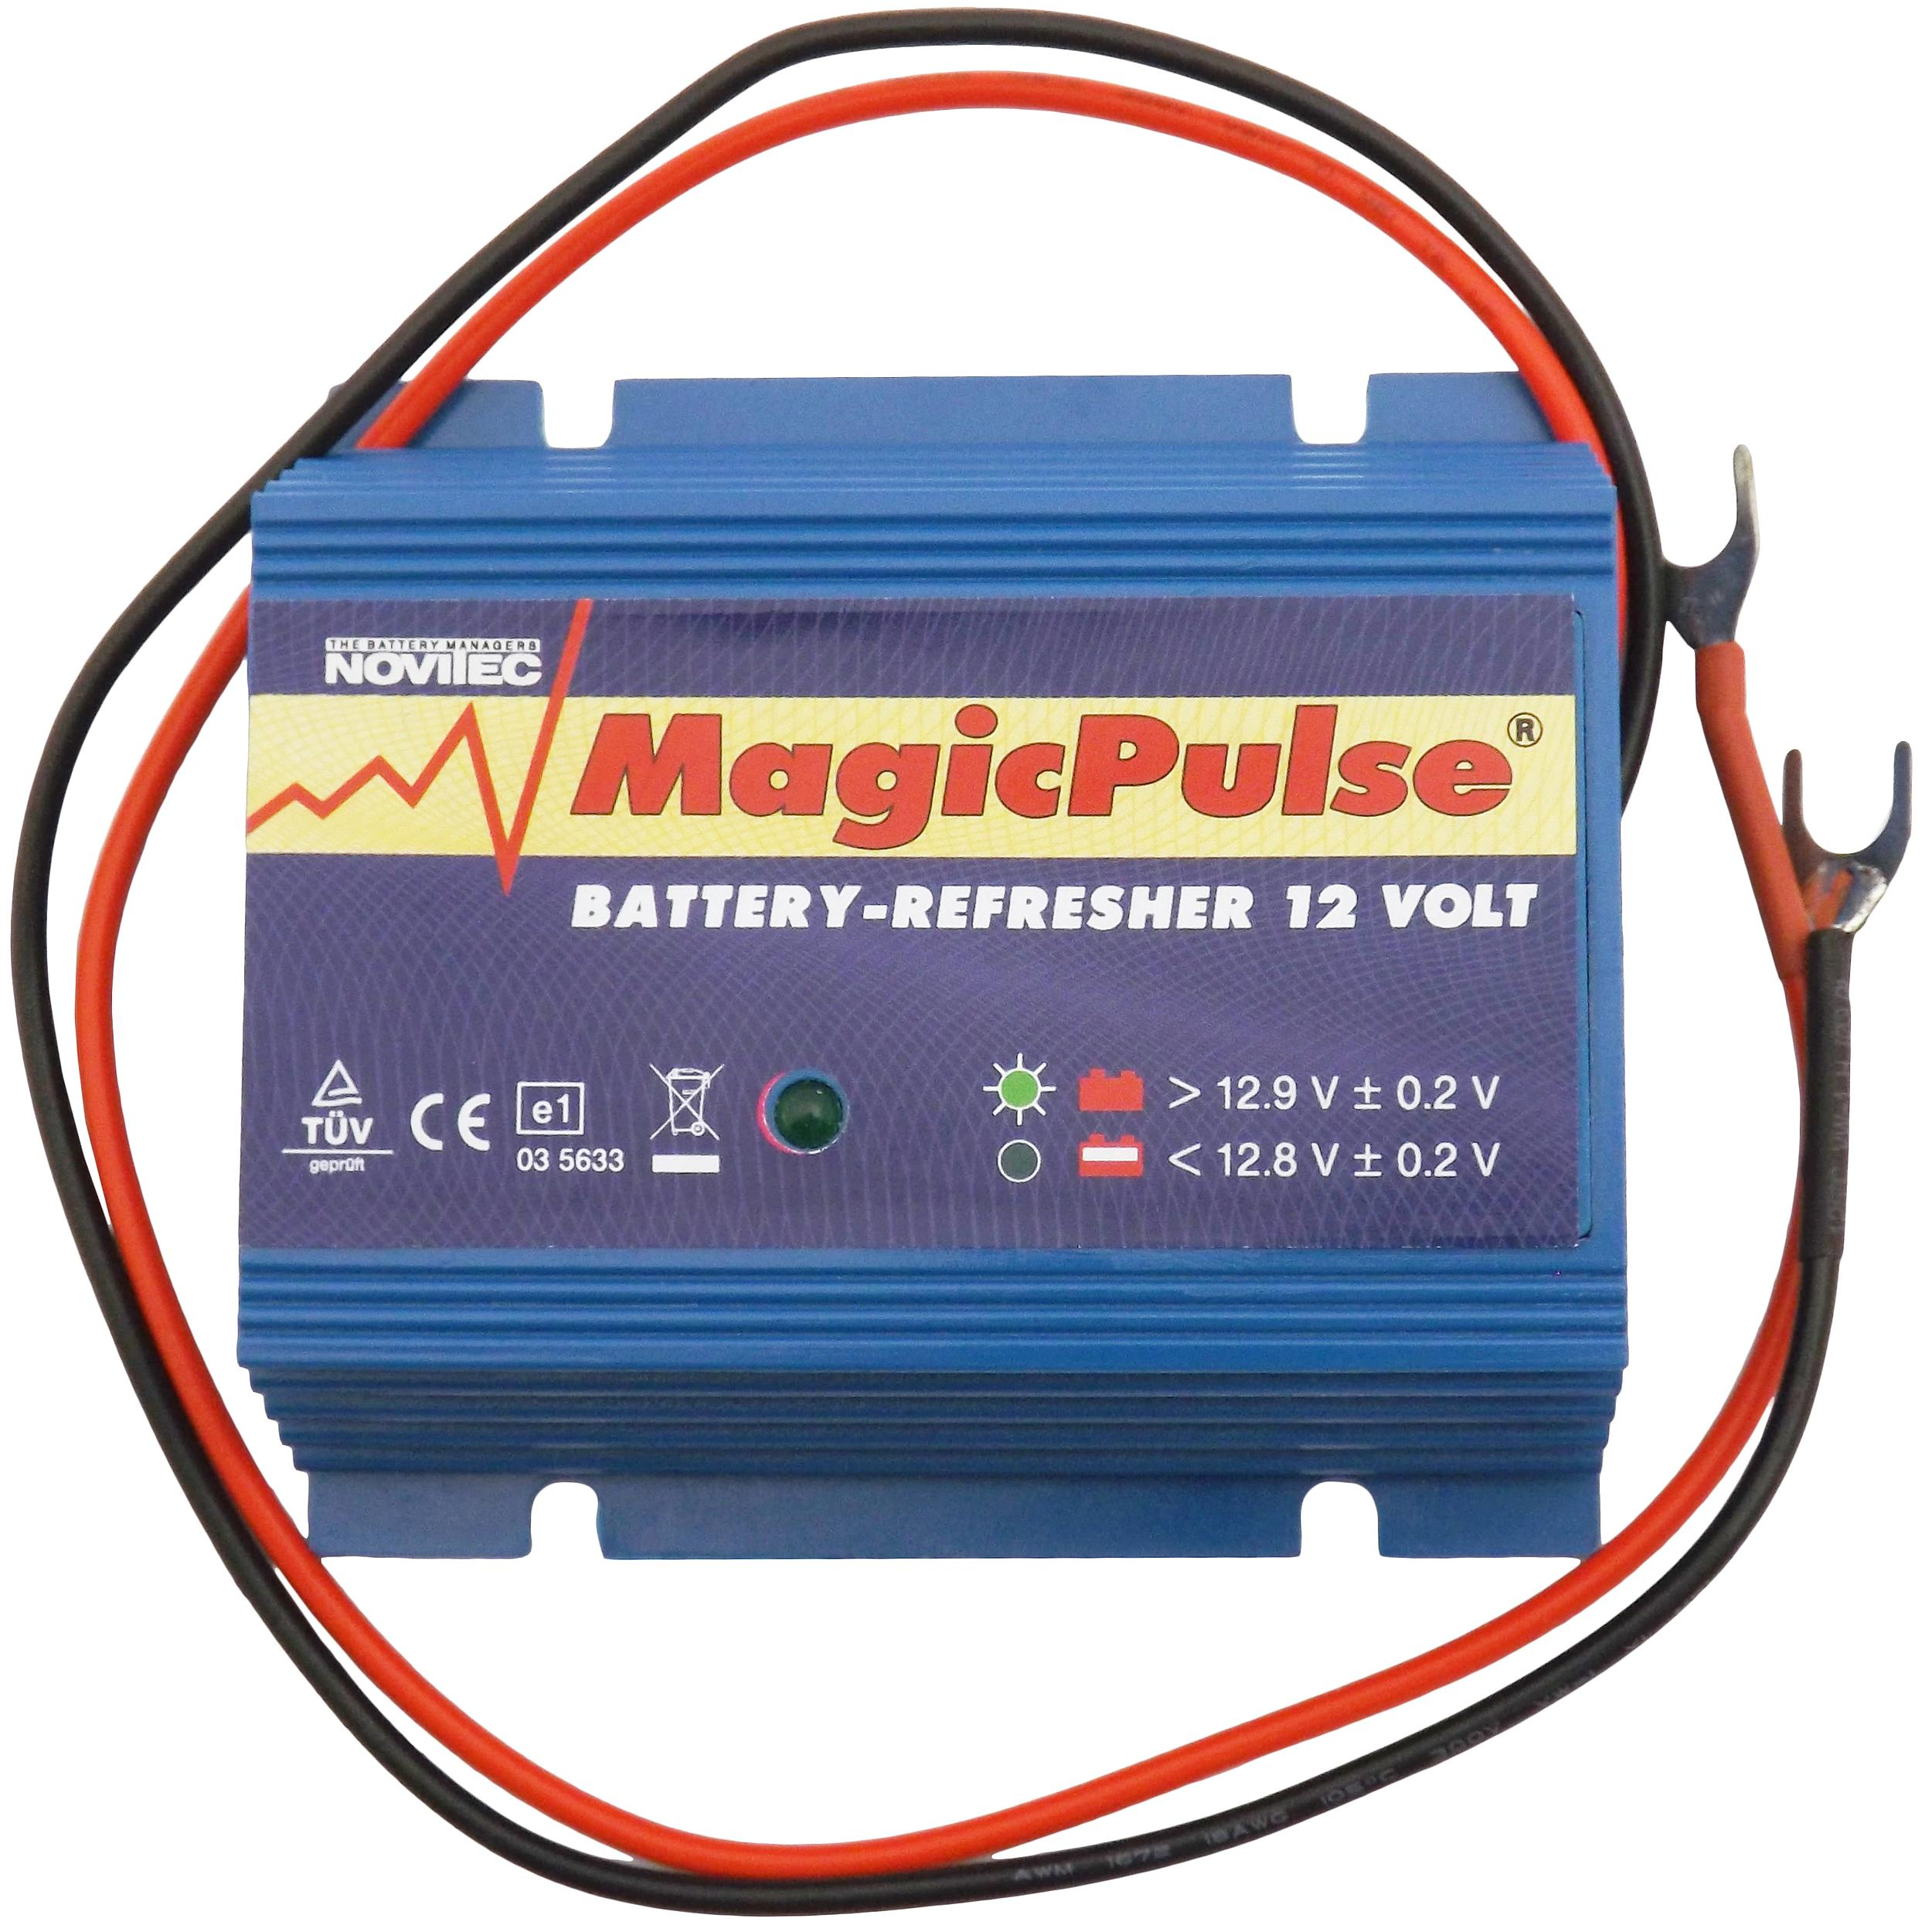 Magicpulse 12 Volt Battery Refresher Extend The Life Of Batteries Parallel On Wiring In Series Regenerate Your For Longer